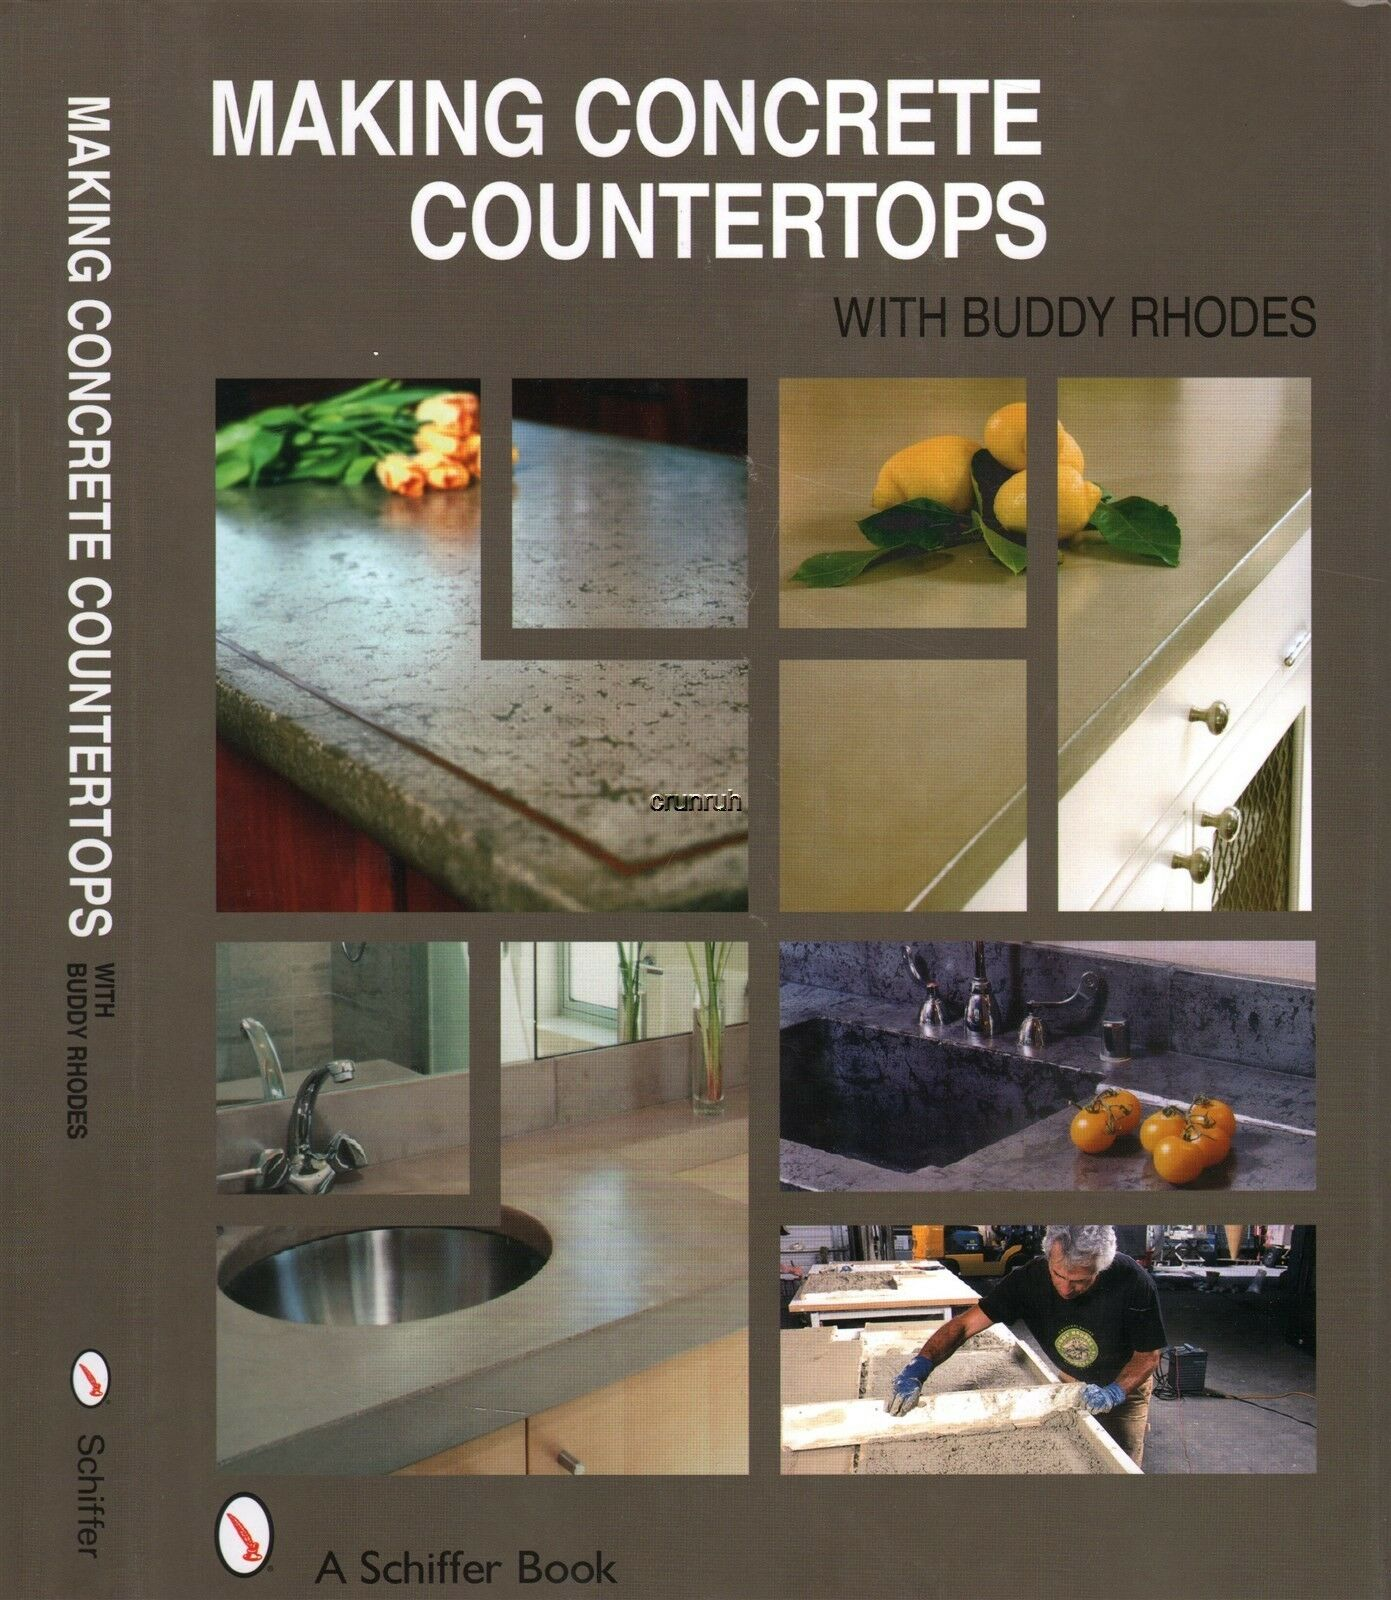 Concrete Countertops Book Making Concrete Countertops By Buddy Rhodes 2007 Hardcover